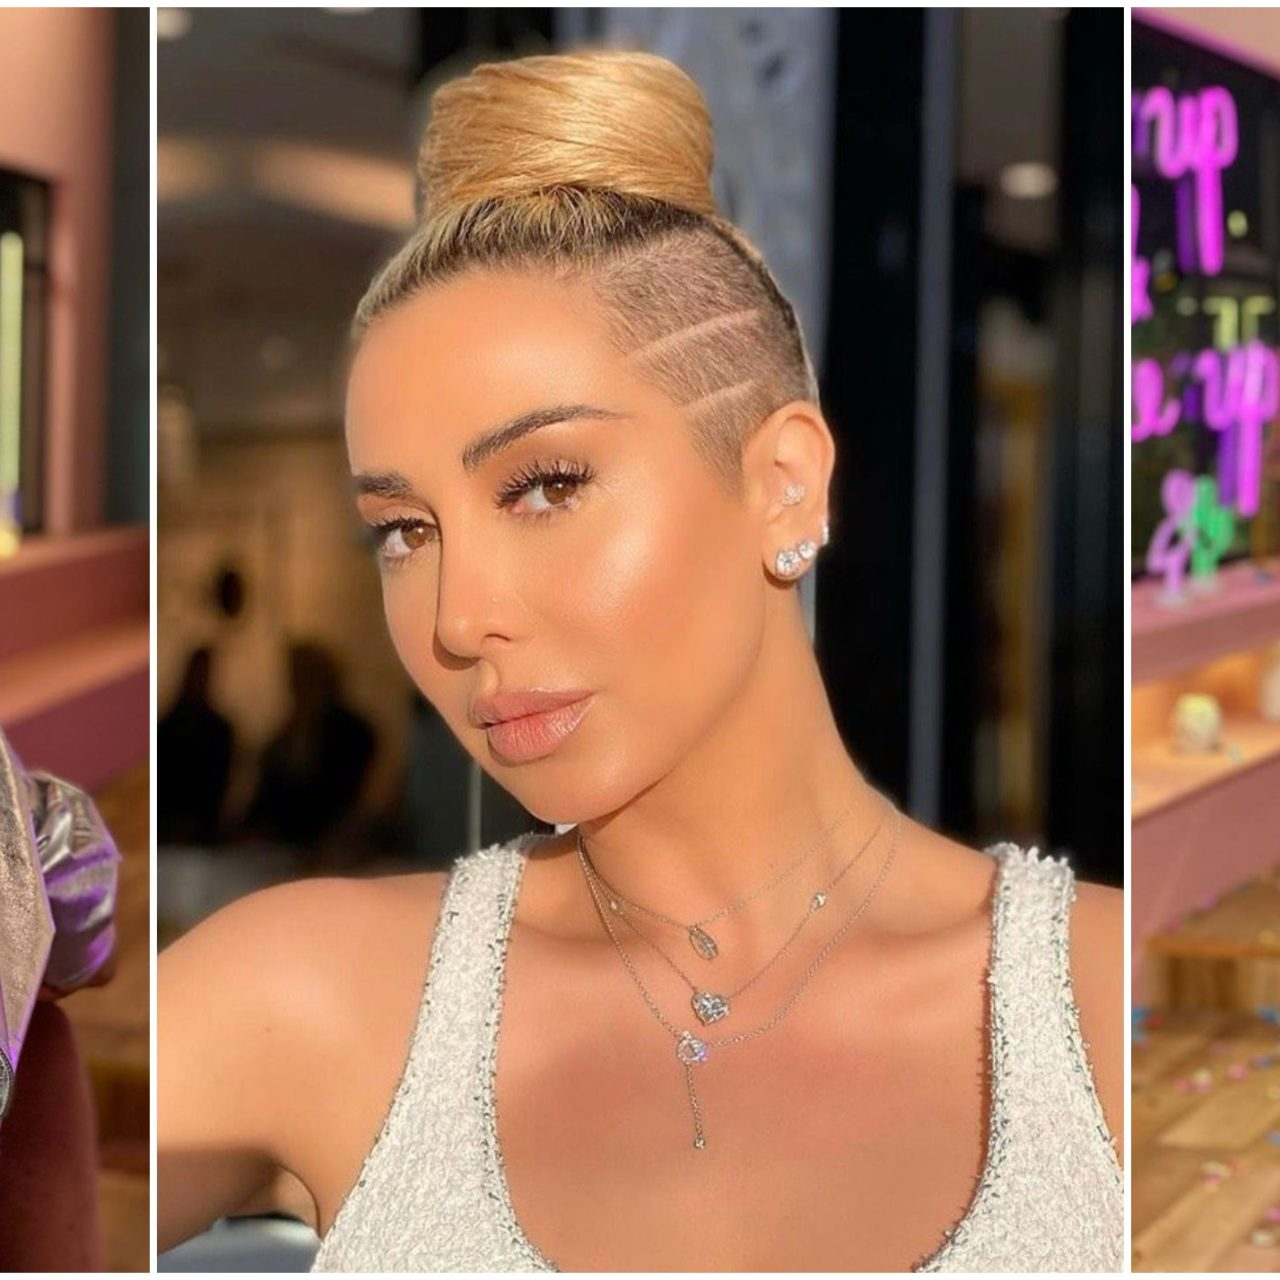 Joelle Mardinian: An Icon in the Beauty World That Never Fails to Surprise Us With Her New looks